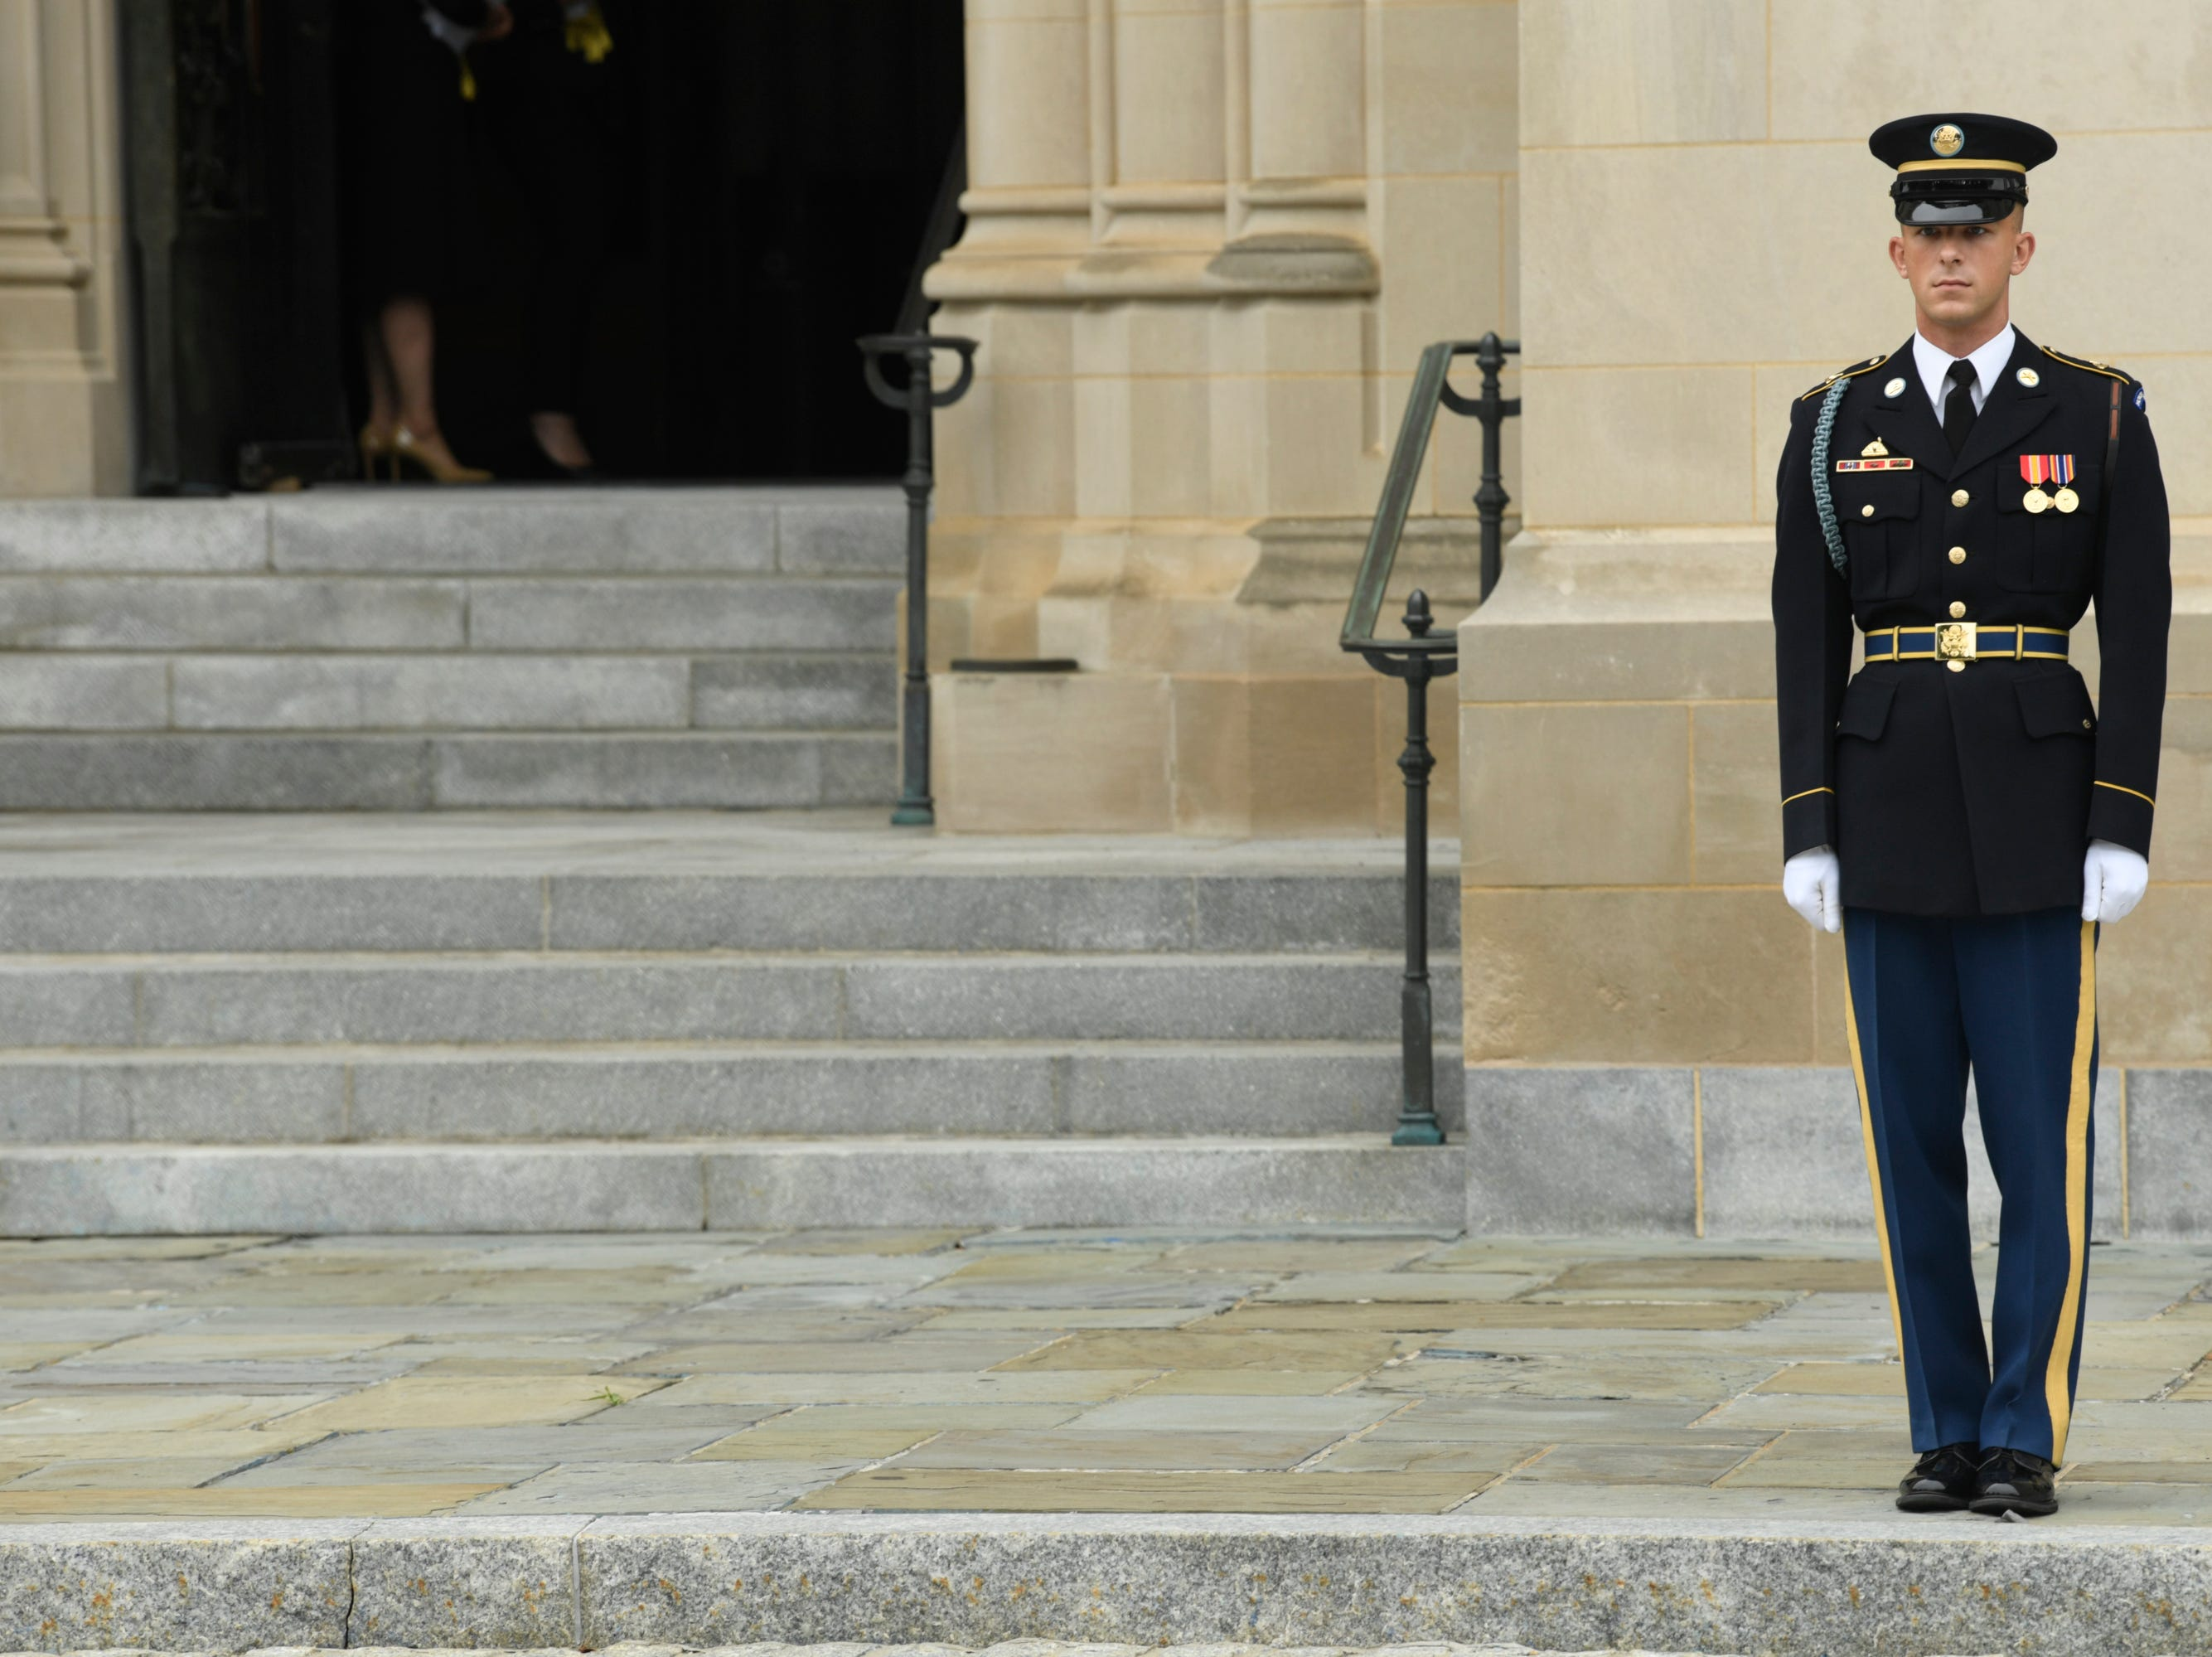 A member of the military honor guard team awaits the arrival of John McCain's casket at the National Cathedral.